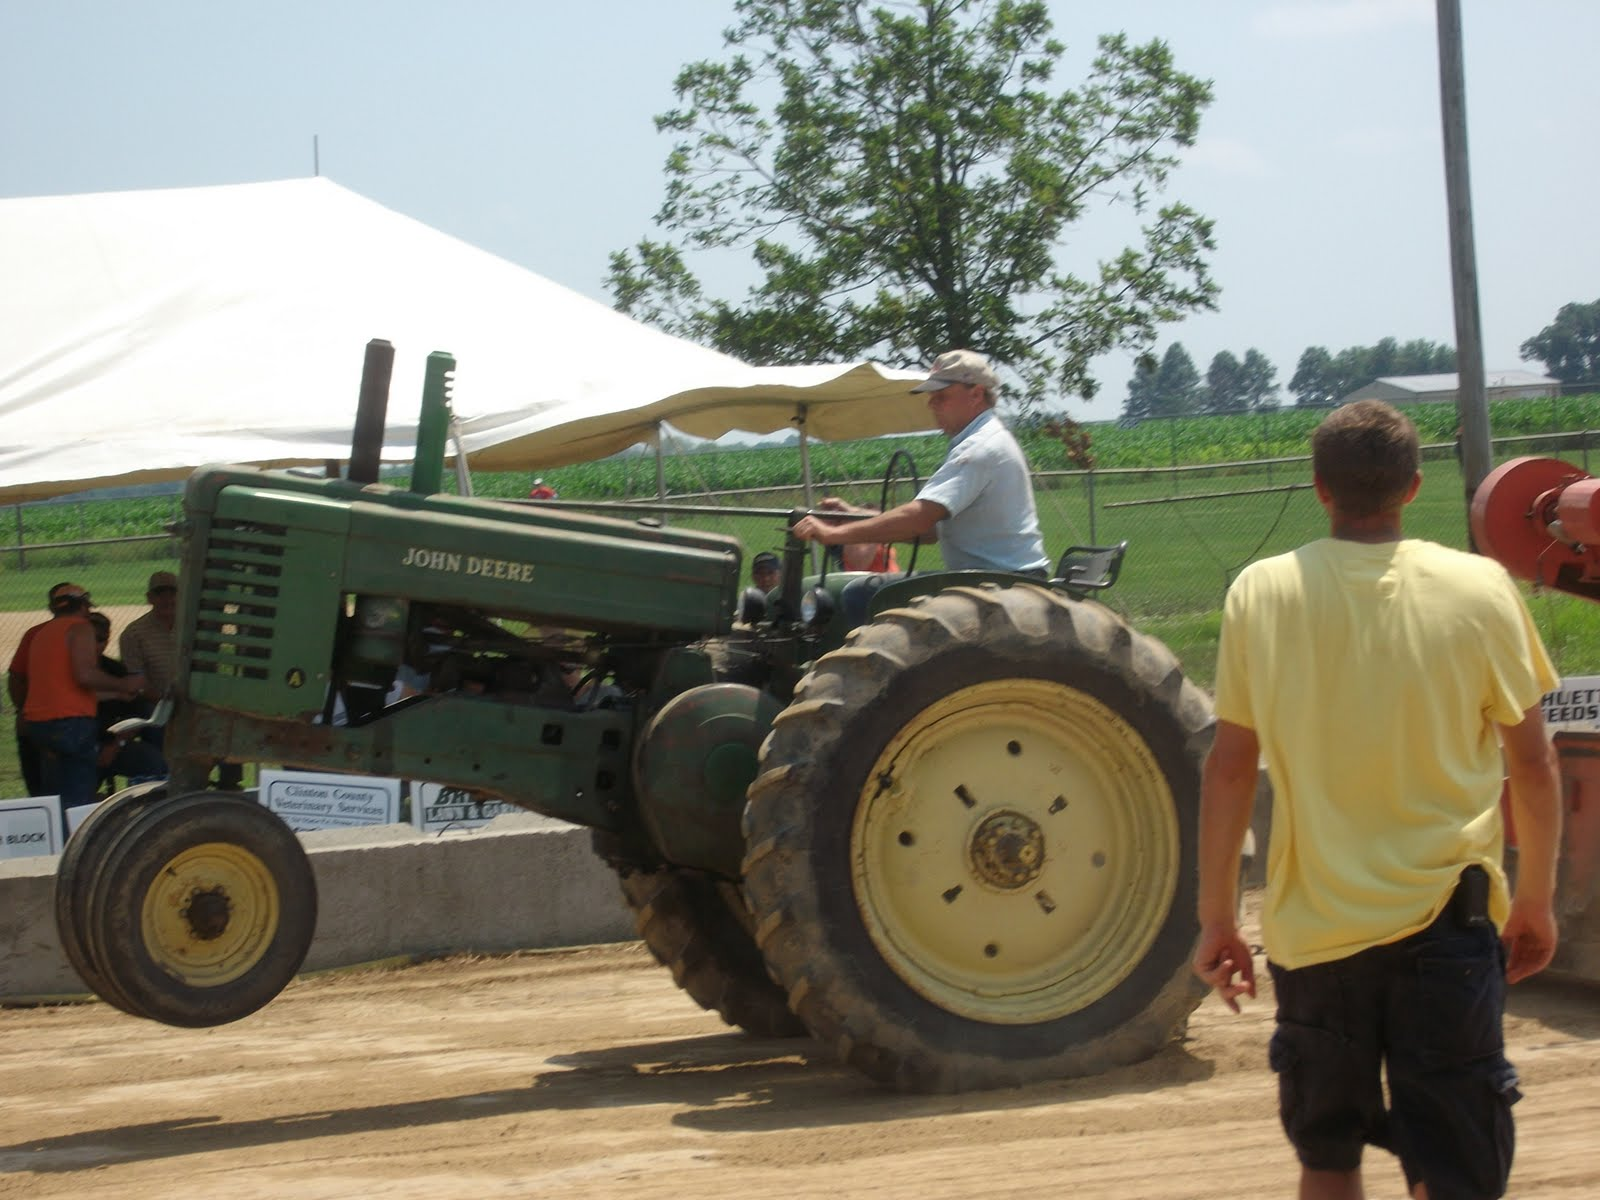 Tractor Pull Tractors : Action packed john deere tractor pull photos